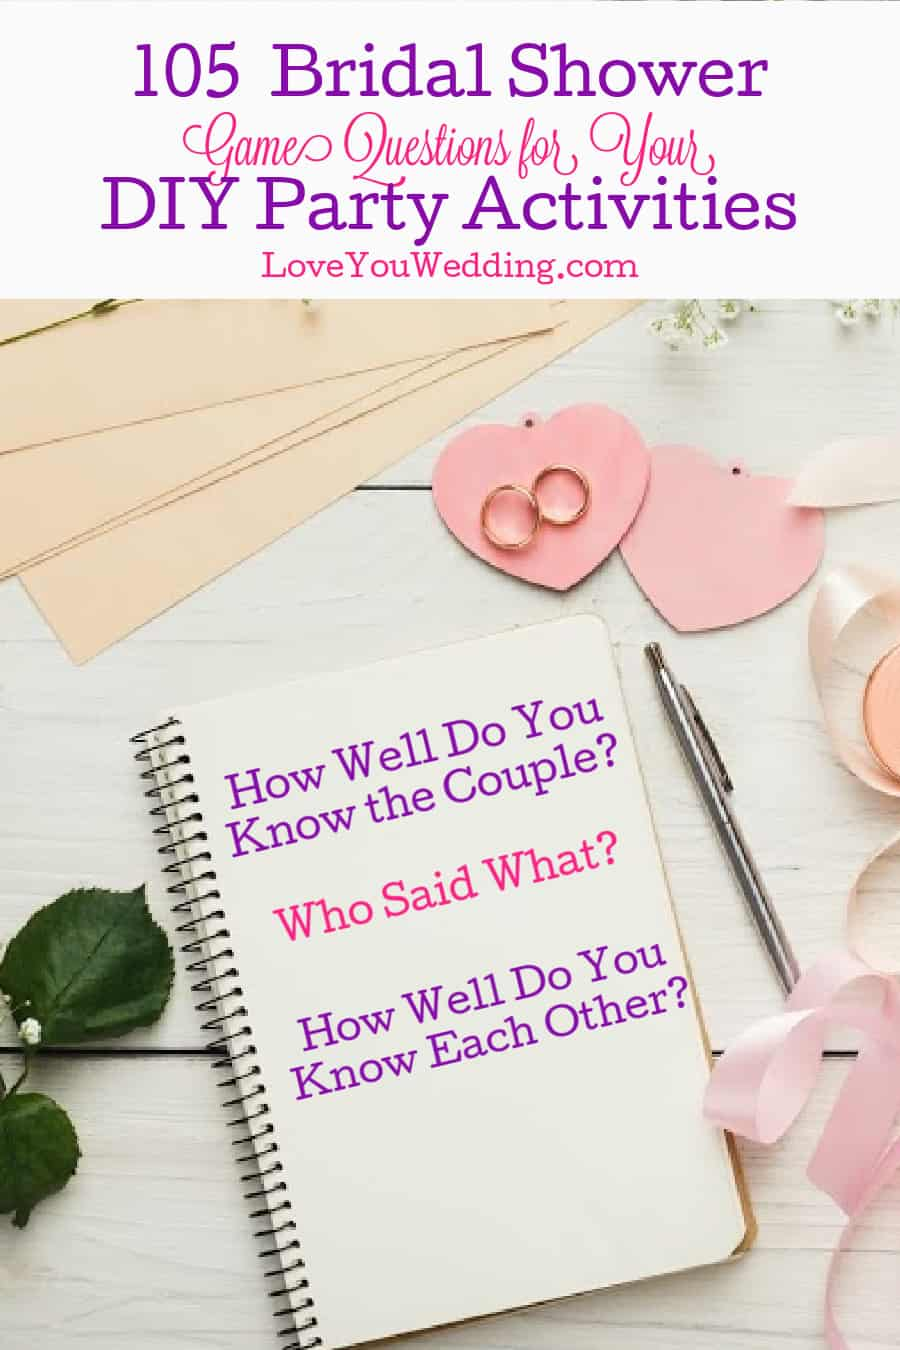 Looking for some fun bridal shower game questions? Check out 105 clever ideas for four different